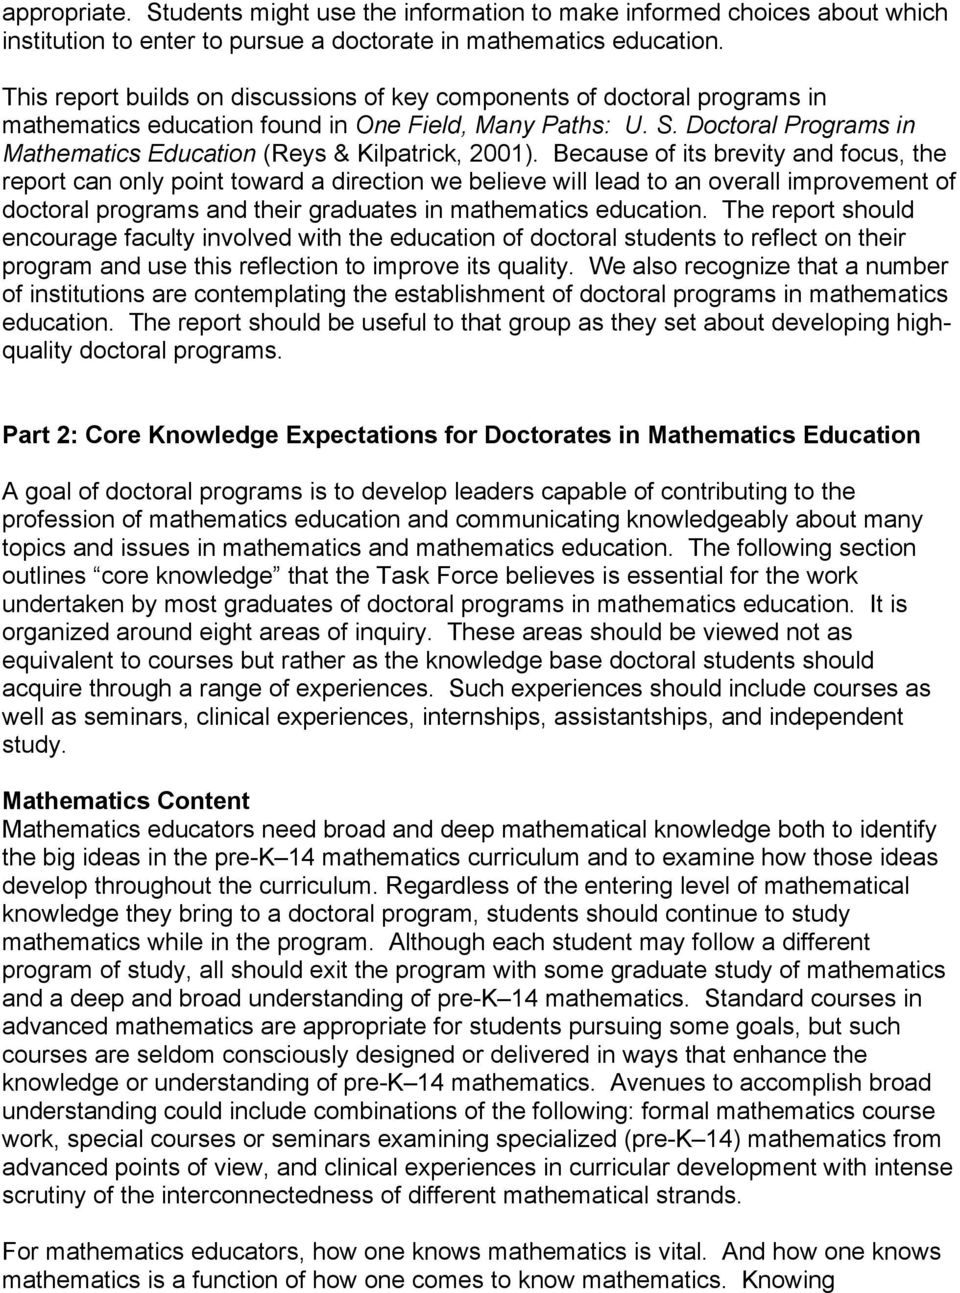 Doctoral Programs in Mathematics Education (Reys & Kilpatrick, 2001).